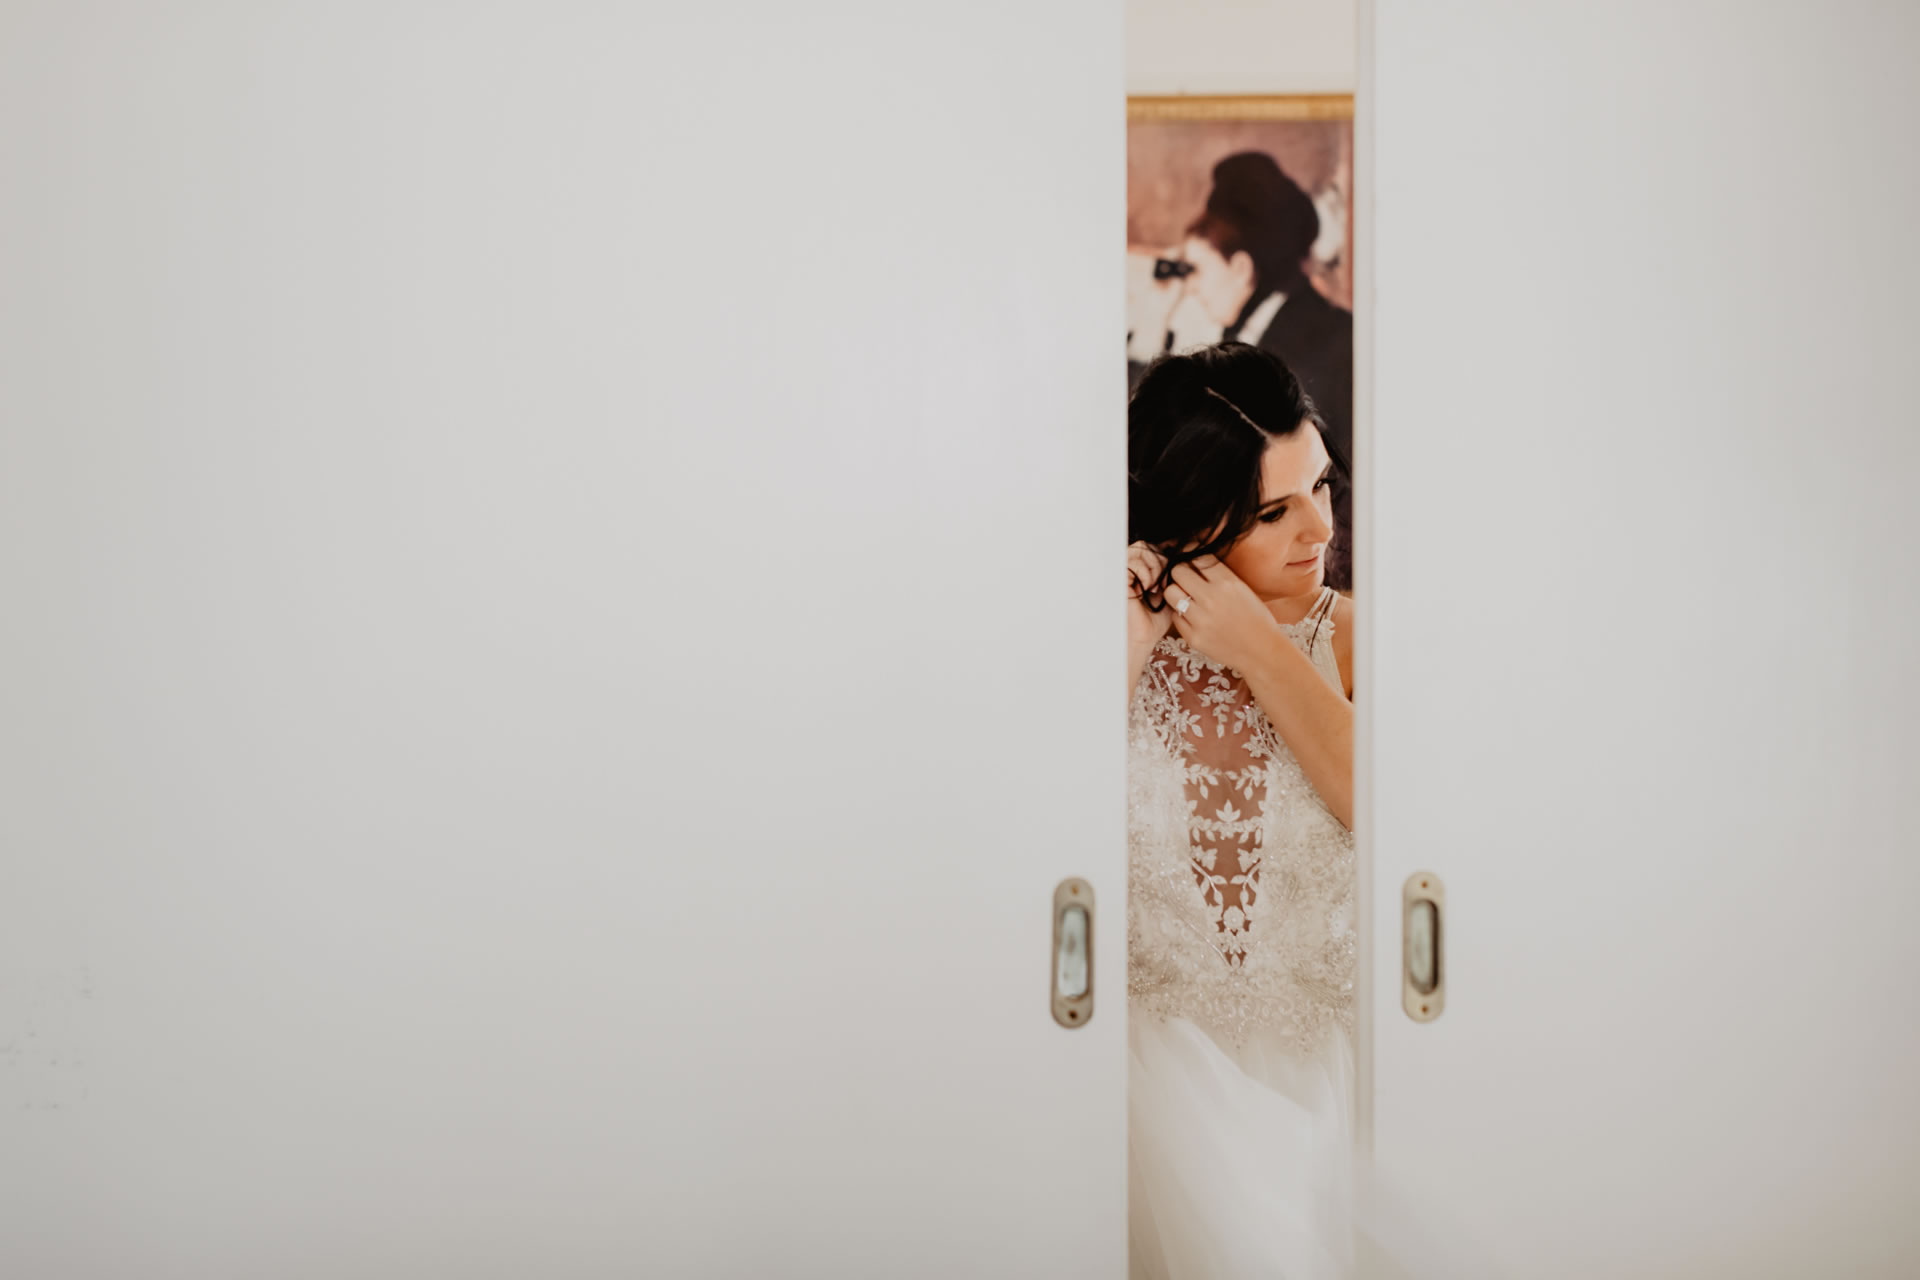 - 5 :: A breath-taking wedding in Rome, the eternal city :: Luxury wedding photography - 4 ::  - 5